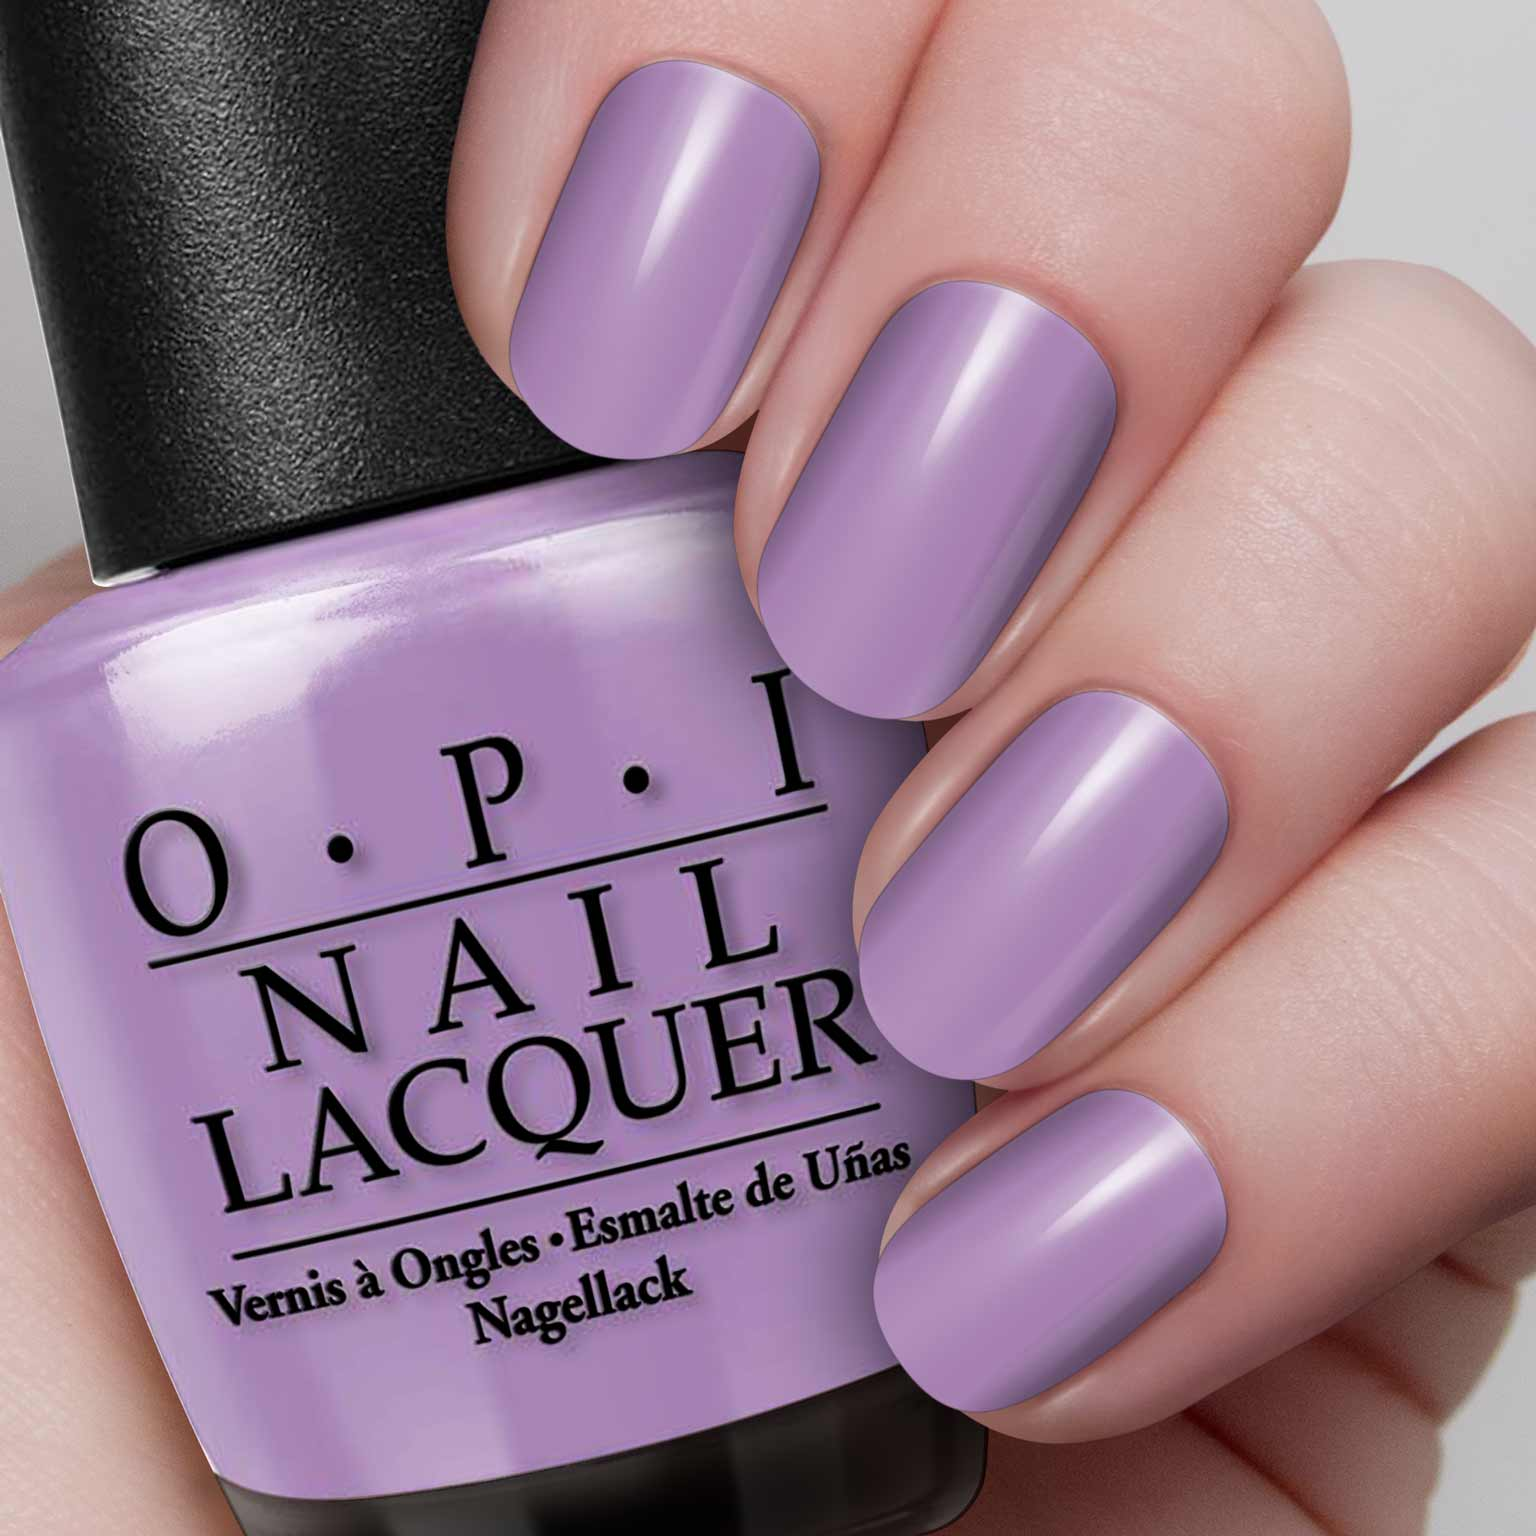 Opi nail polish do you lilac it hollywood nails supply uk nvjuhfo Images